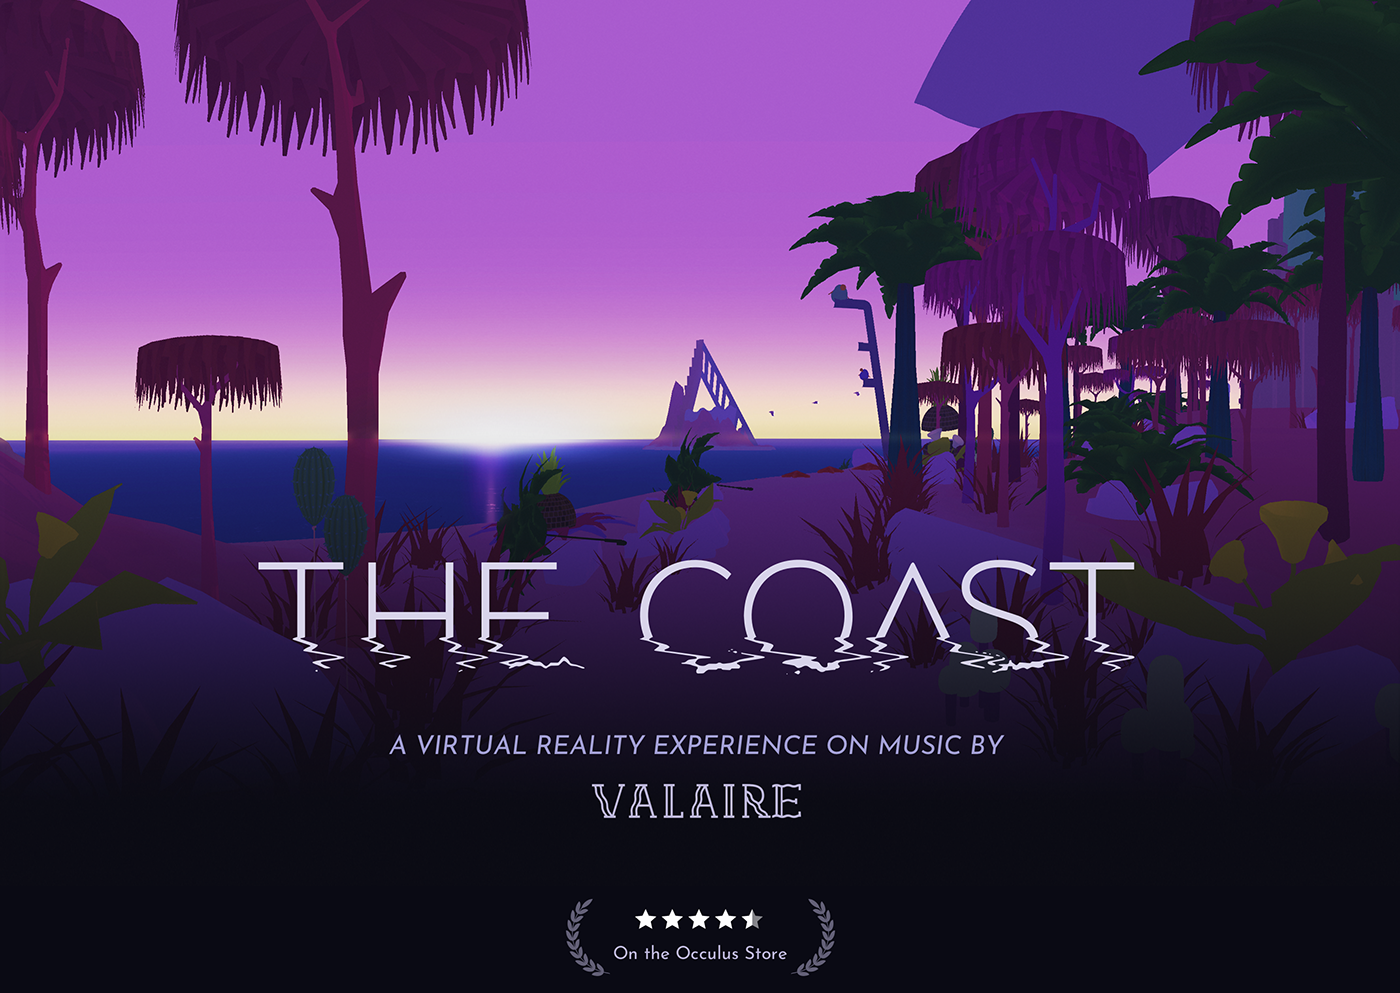 vr Virtual reality turbulent Valaire the coast music video Experience immersive music Réalité virtuelle